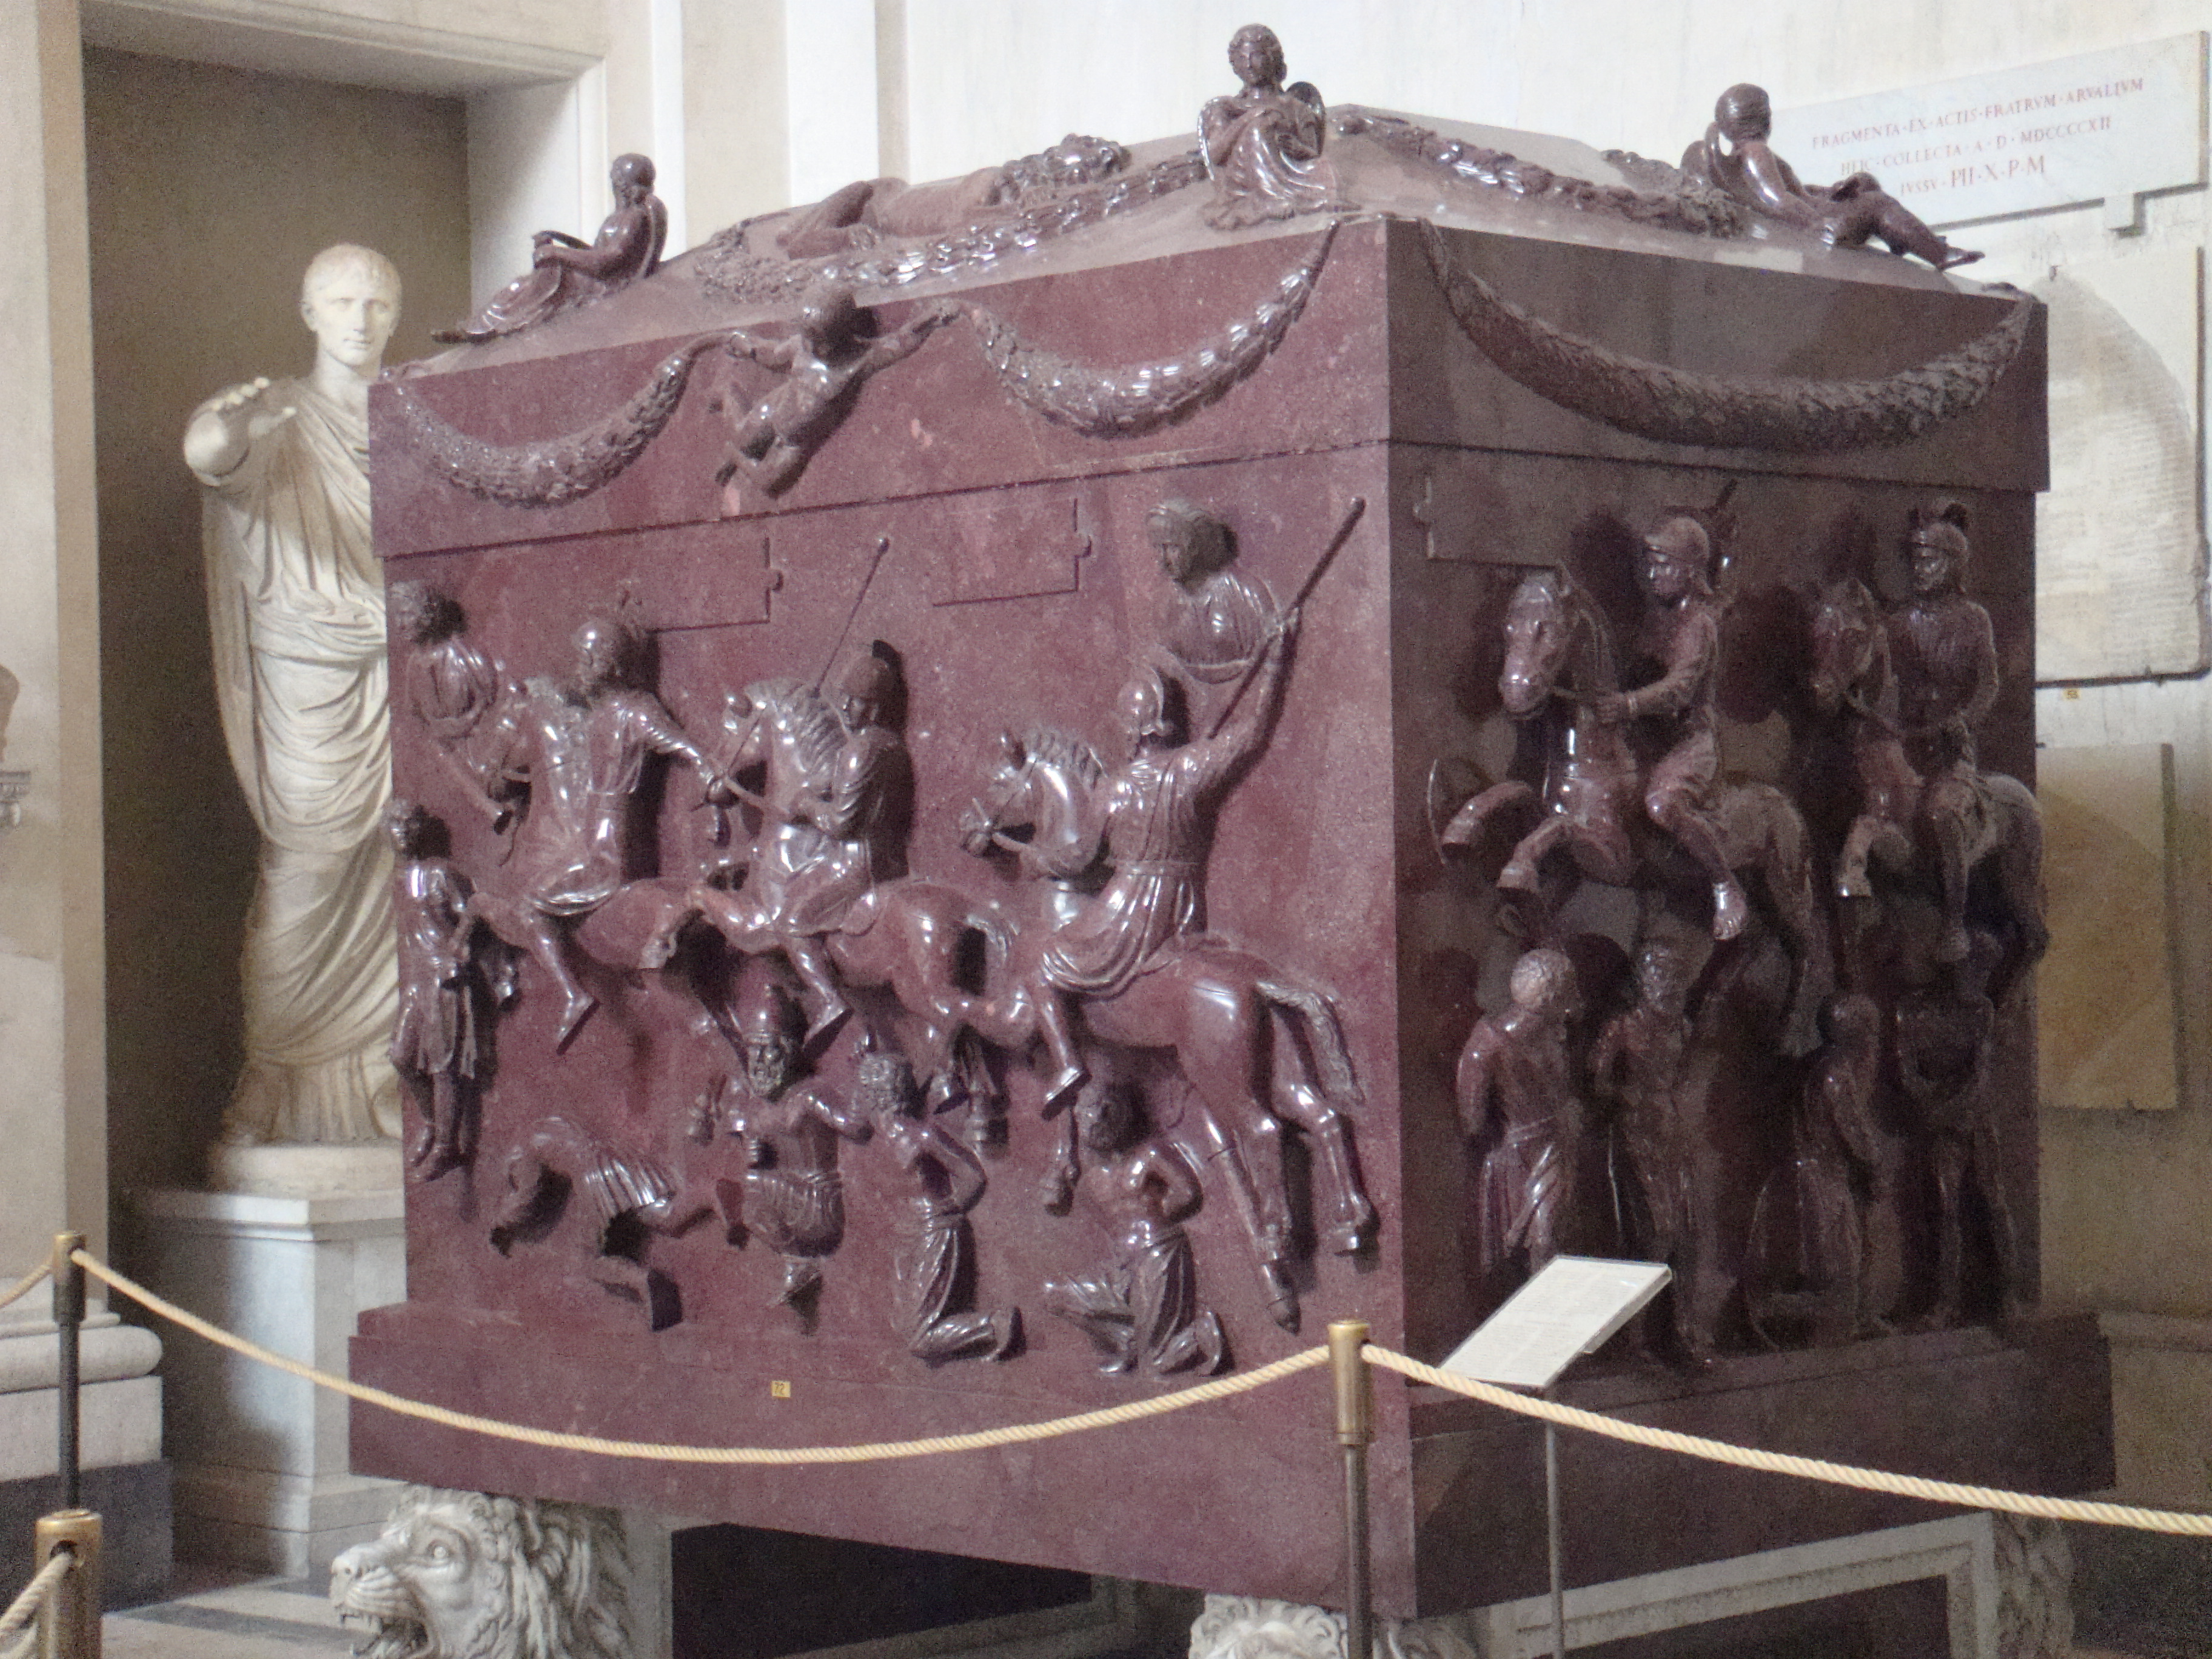 art sarcophagus The eternal embrace: conserving the tetnies sarcophagi a project initiated by the museum of fine arts, boston, to conserve two of its most prized works of classical art, the tetnies sarcophagi, has revealed an intimate world of ancient rituals.